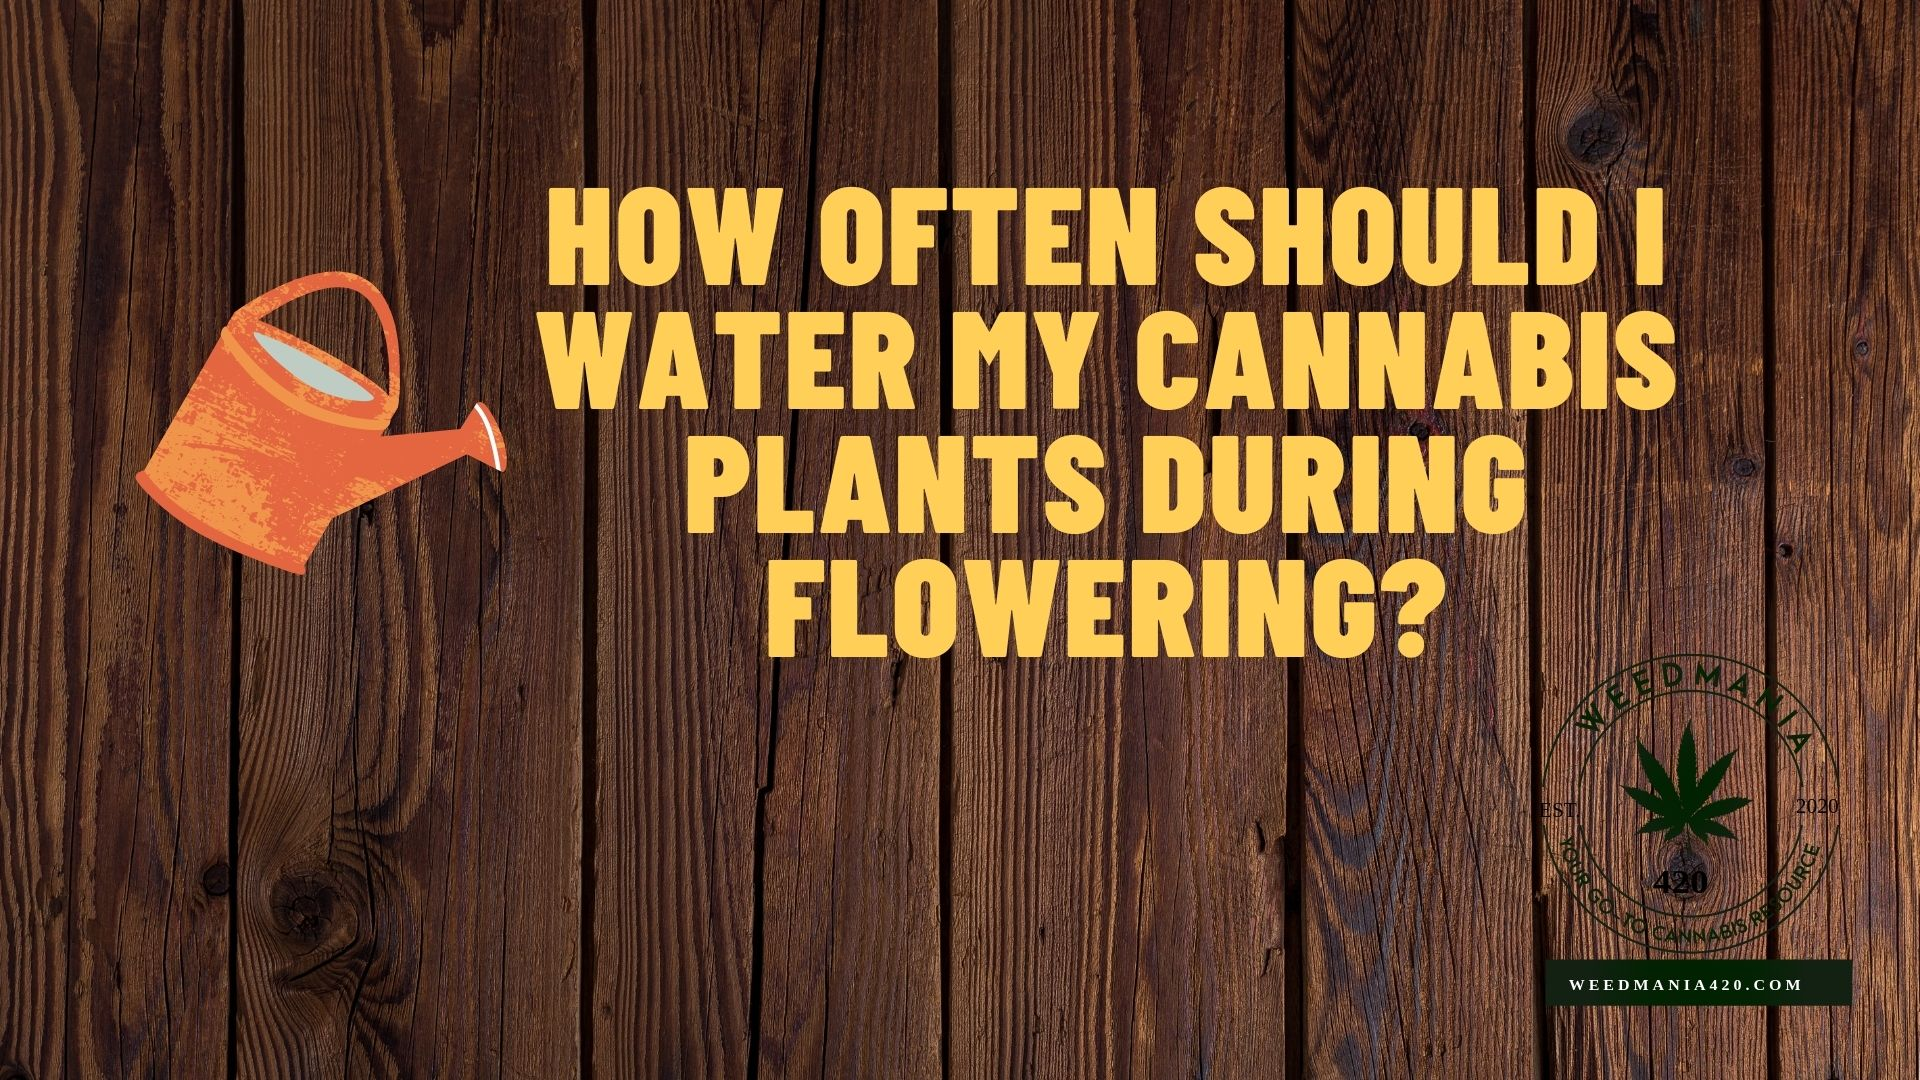 How Often Should I Water My Cannabis Plants During Flowering?